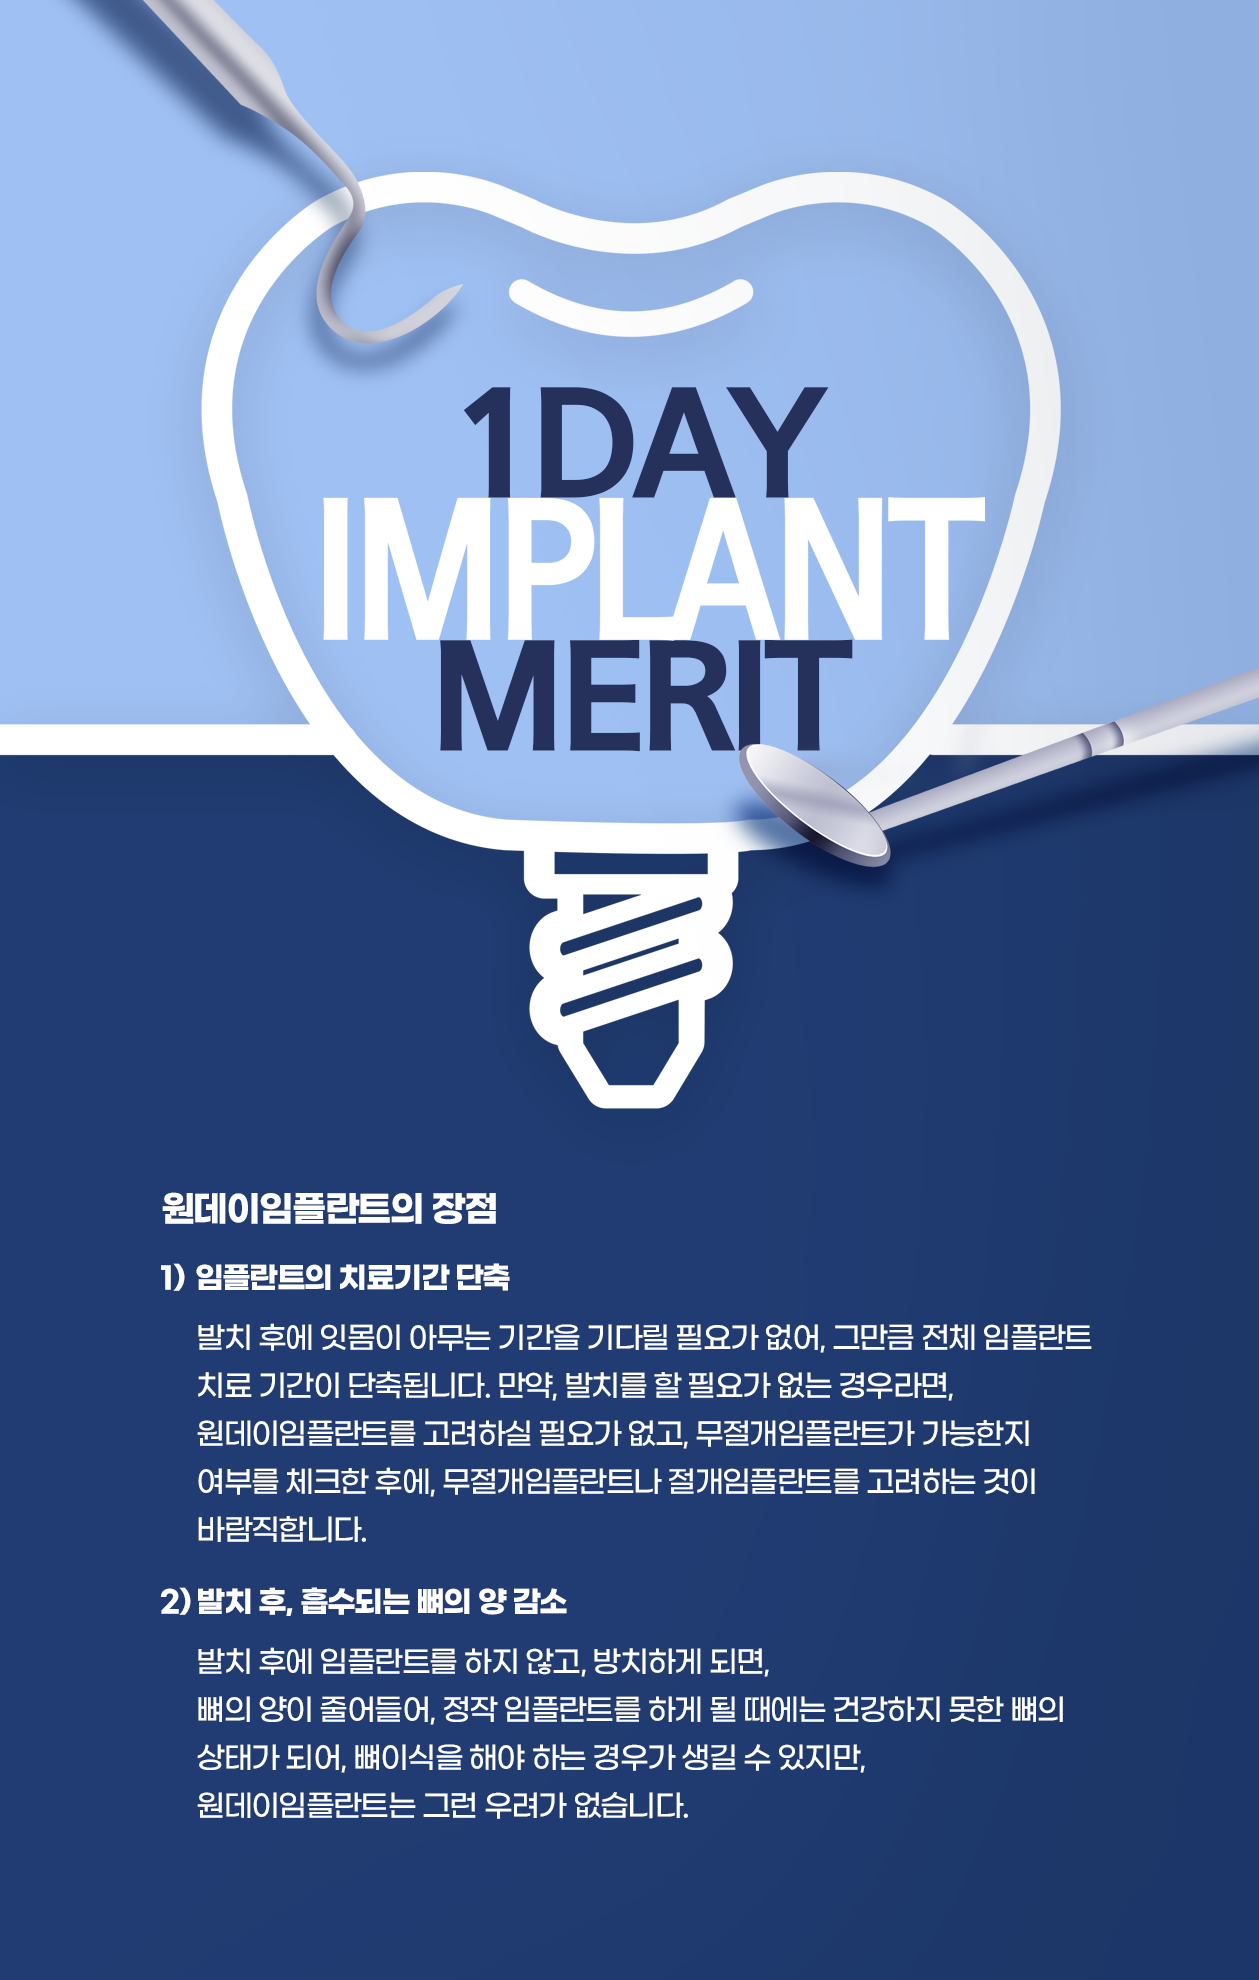 1DAY IMPLANT MERIT